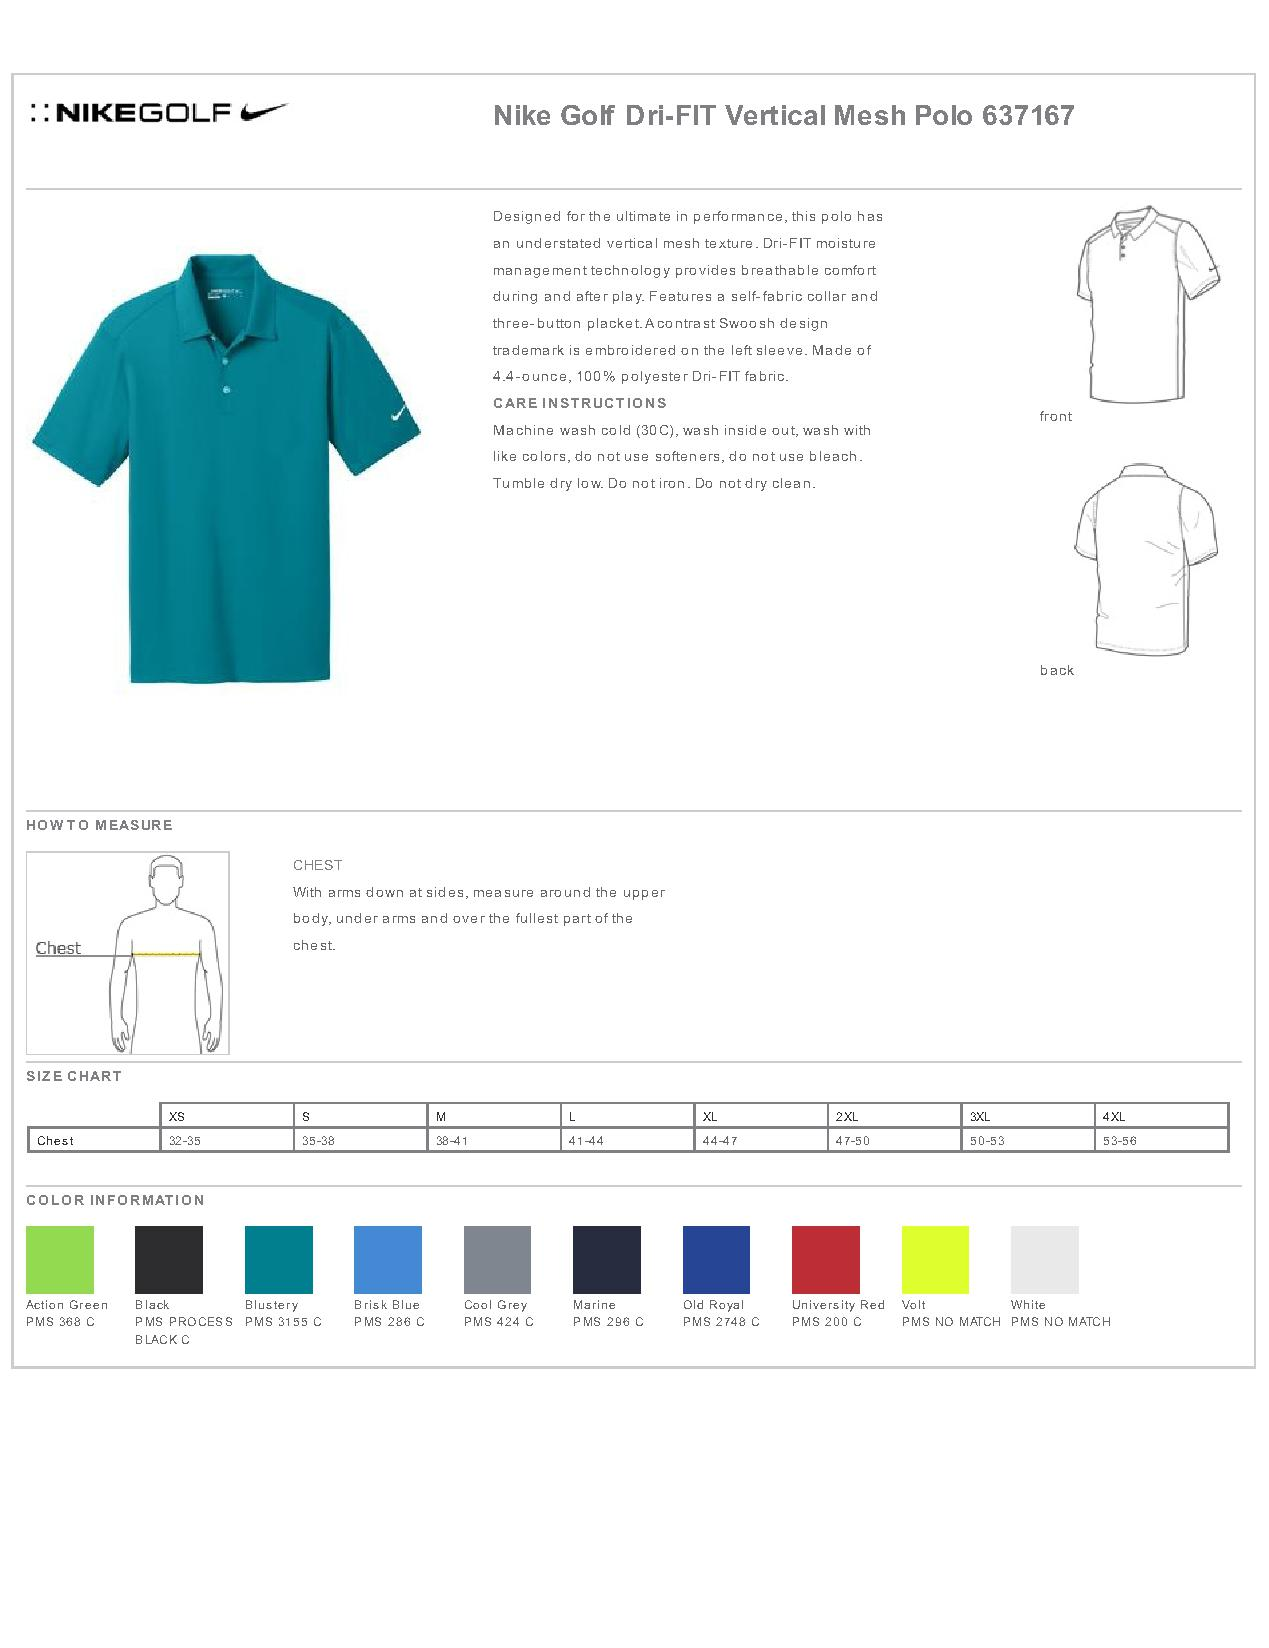 7d7688c6b0b4 Nike Golf 637167 - Dri-FIT Vertical Mesh Polo - Men s T-Shirts